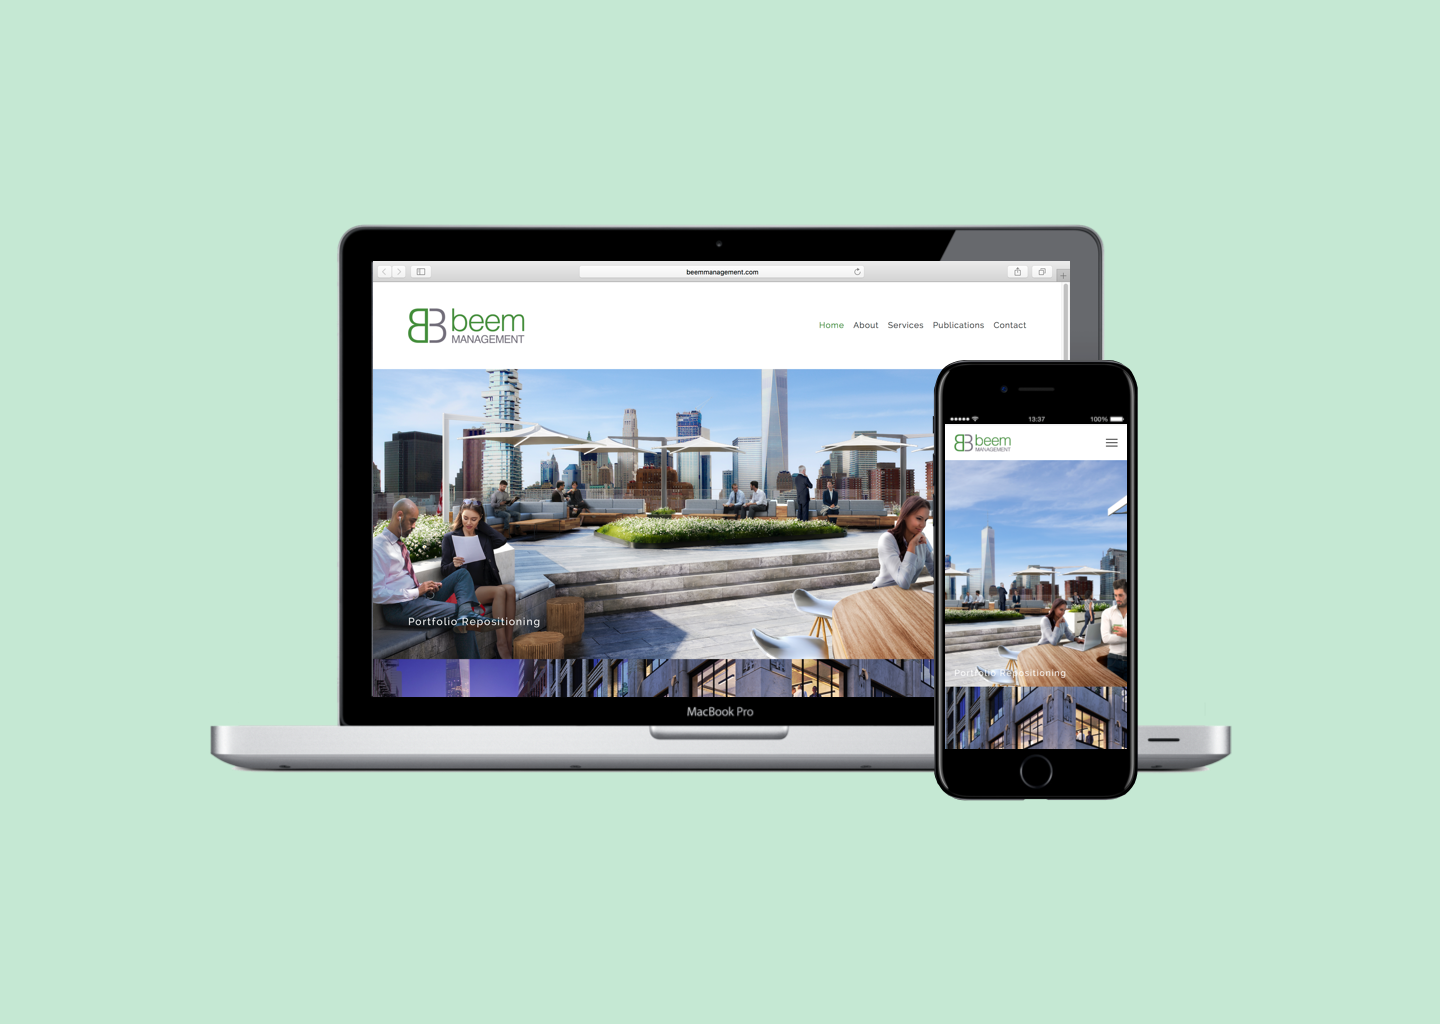 Market Your Business for $700 - Beem Management is an exclusive architectural management company in NYC.They needed to bring their presence online in a way that clearly reflects their professional results and innovative ethos.Check out www.beemmanagement.com